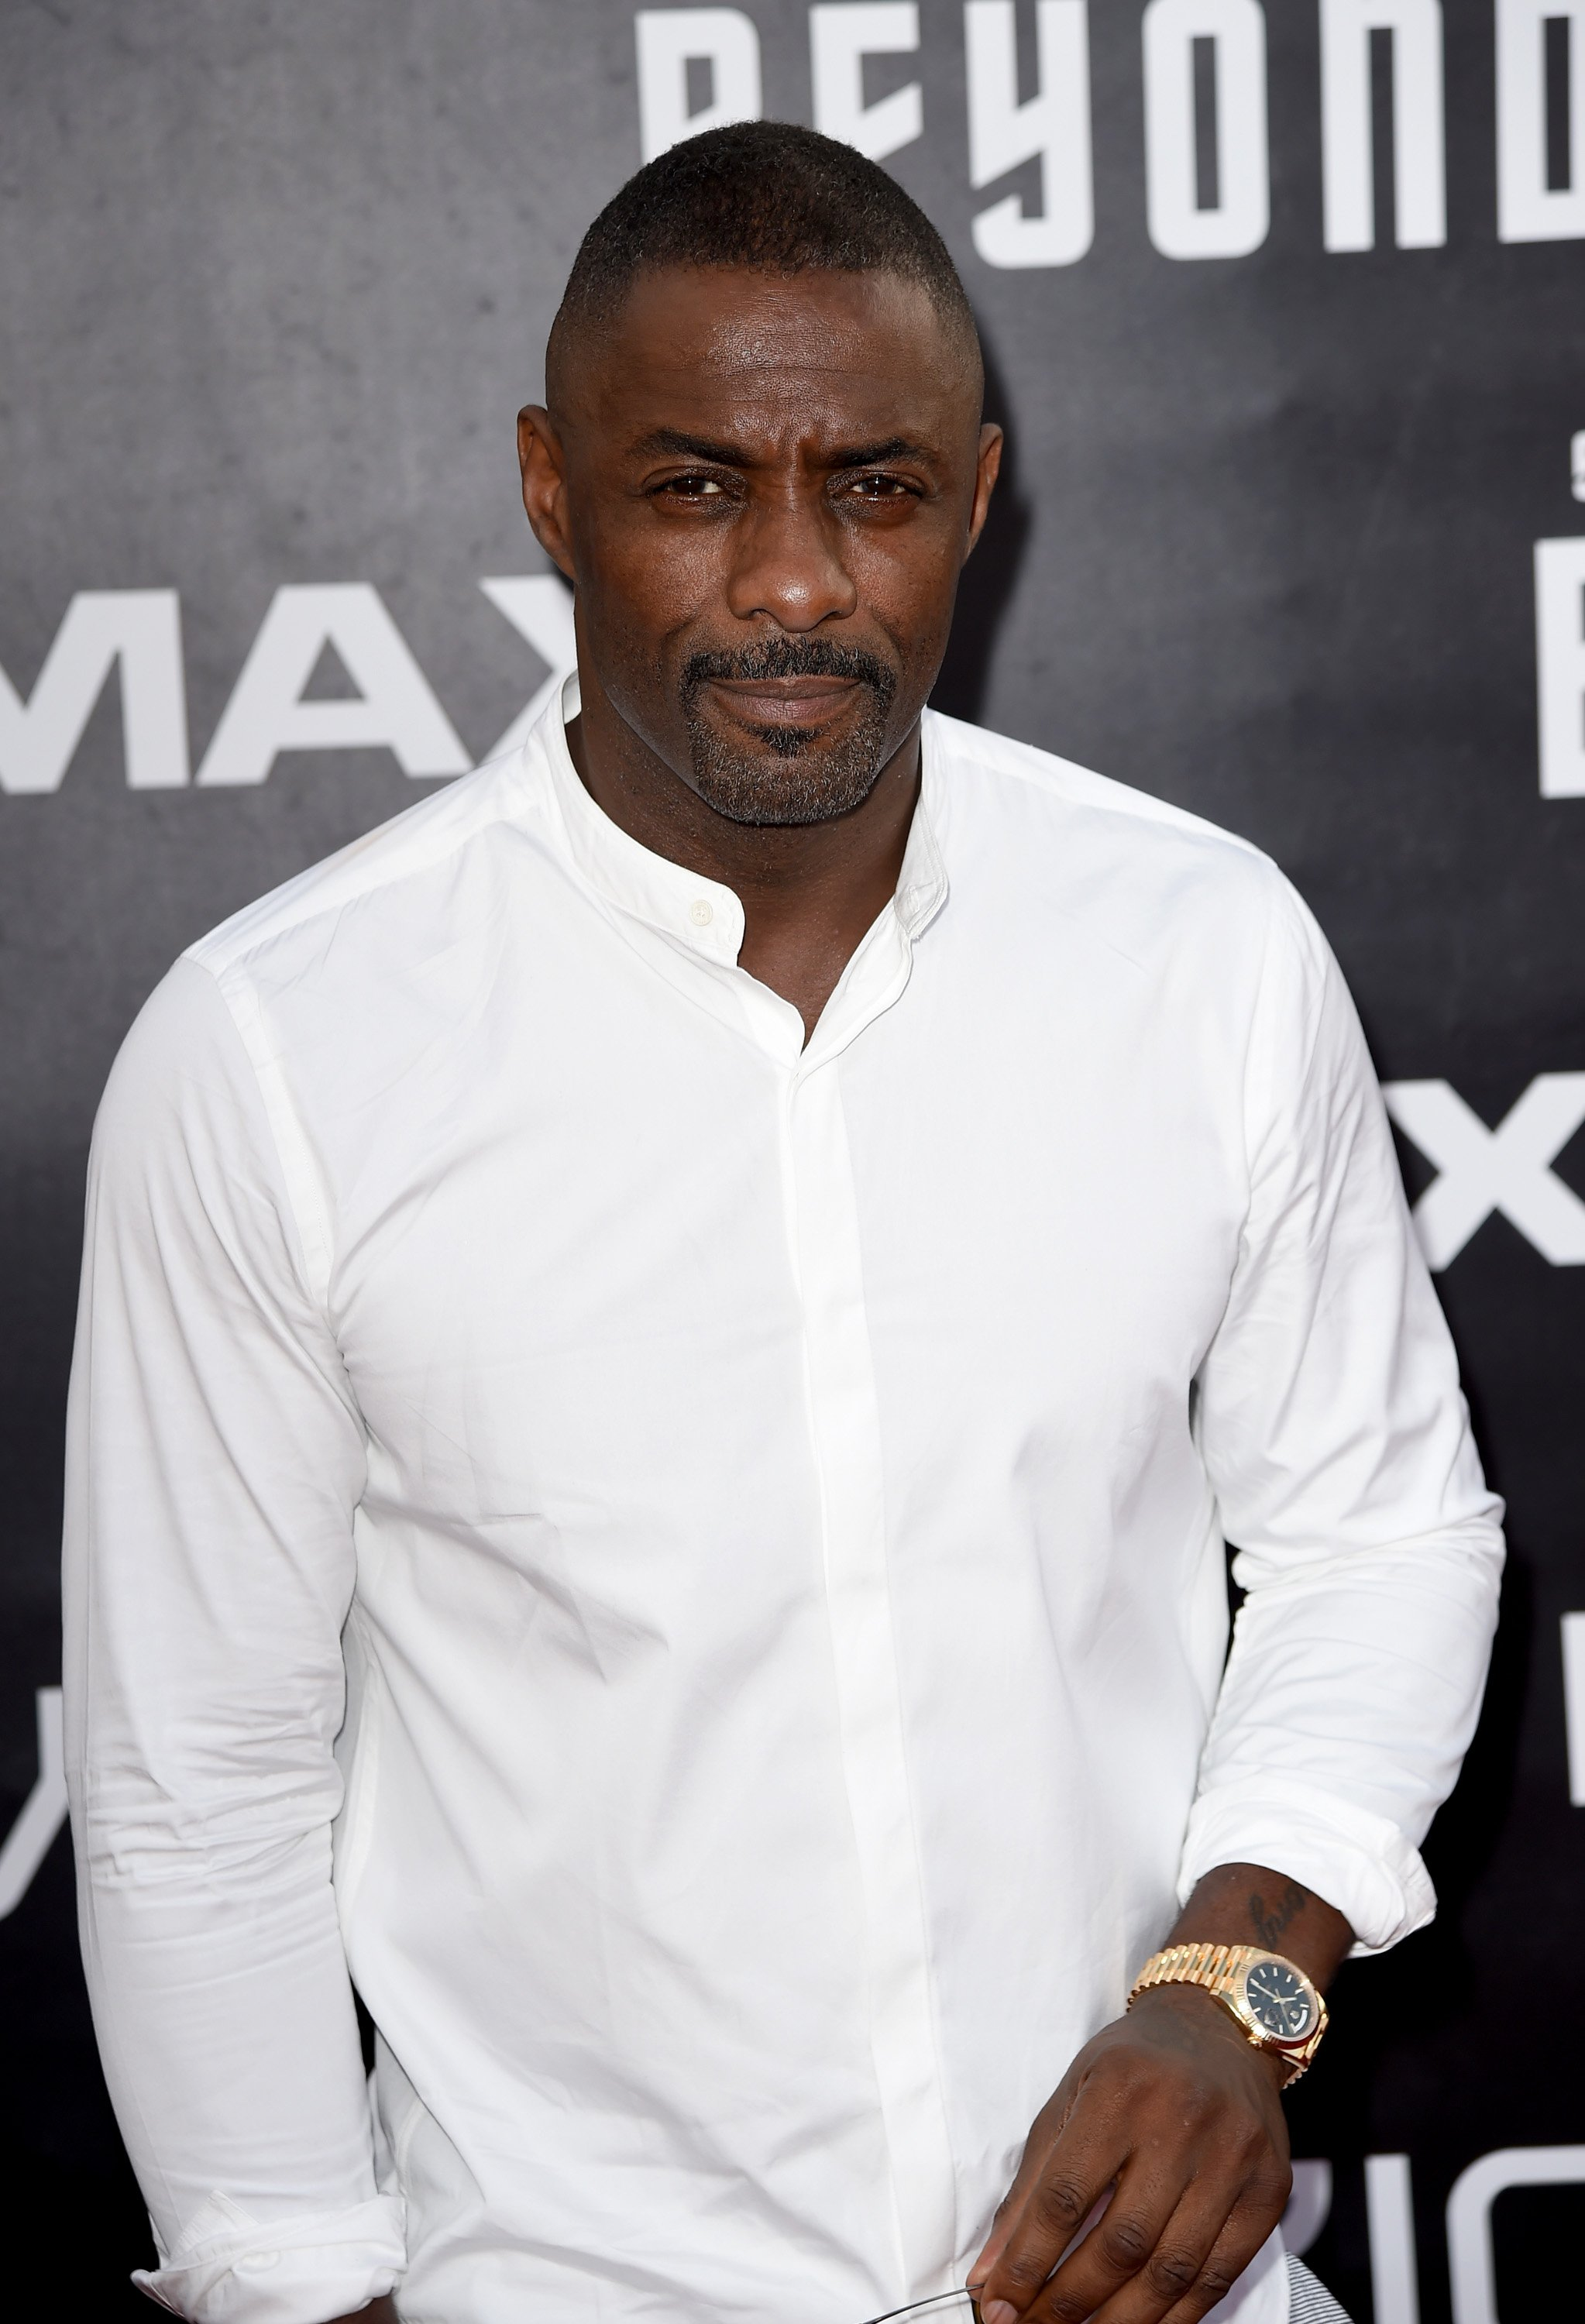 Image Credit: Getty Images/Kevin Winter   Elba at the premiere of Star Trek: Beyond